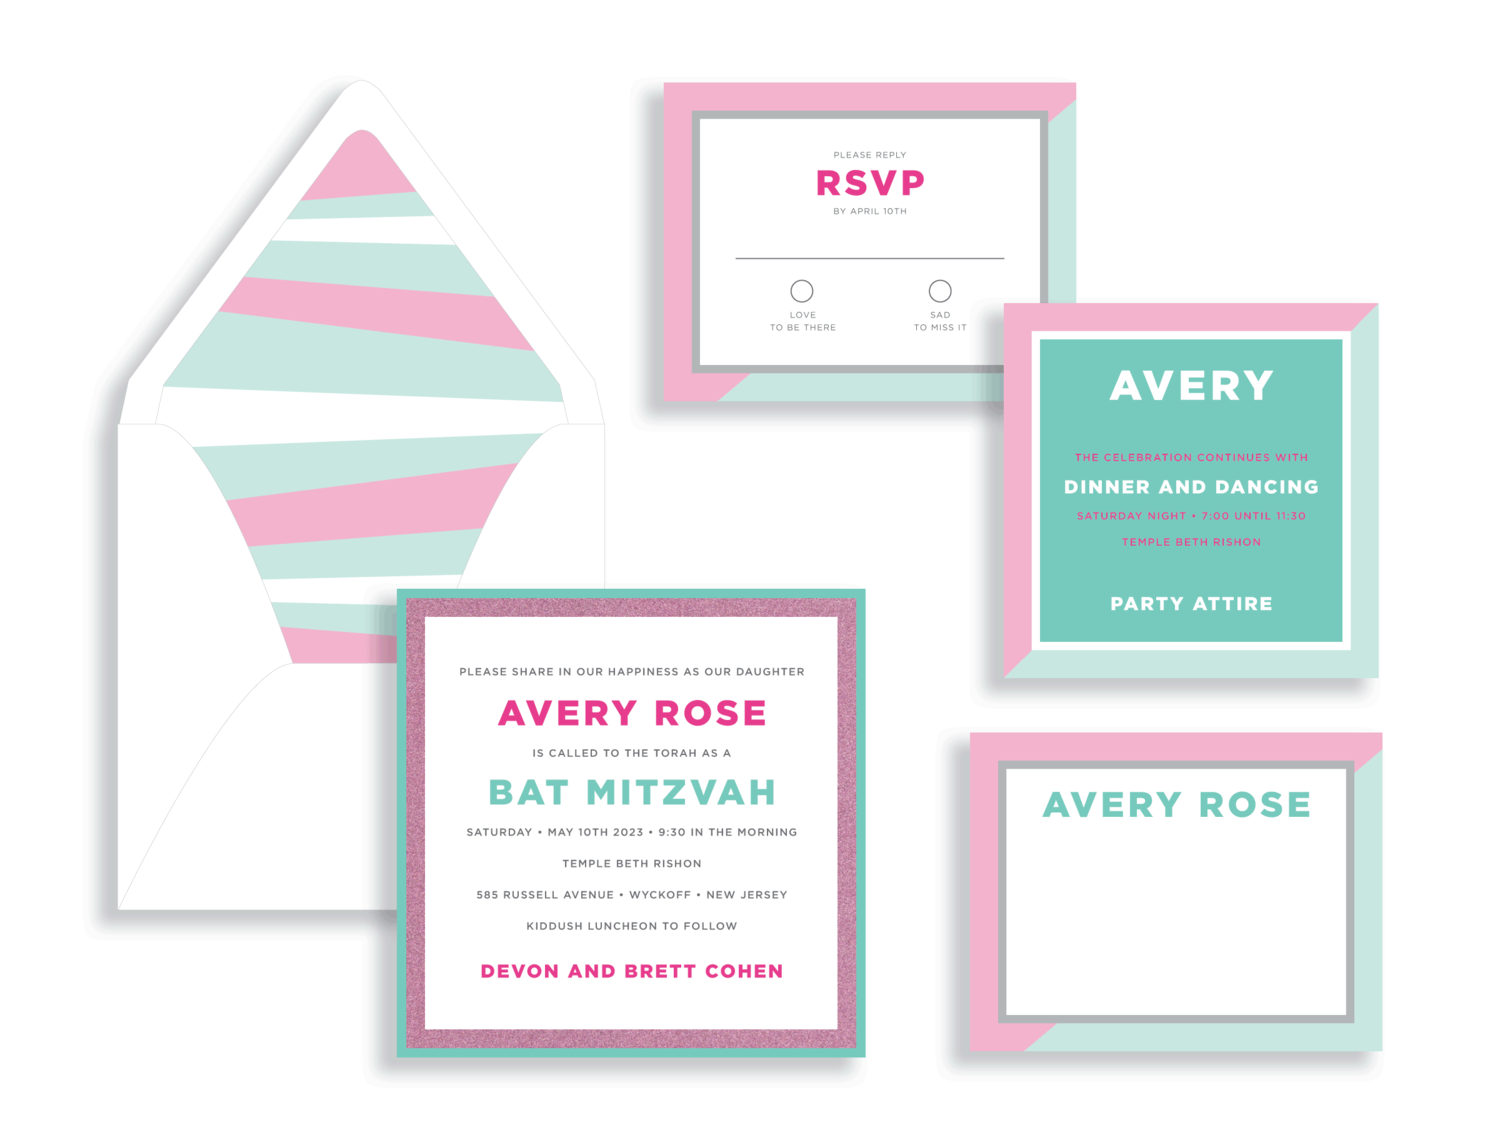 Avery bat mitzvah invitation available in northern Virginia from Staccato